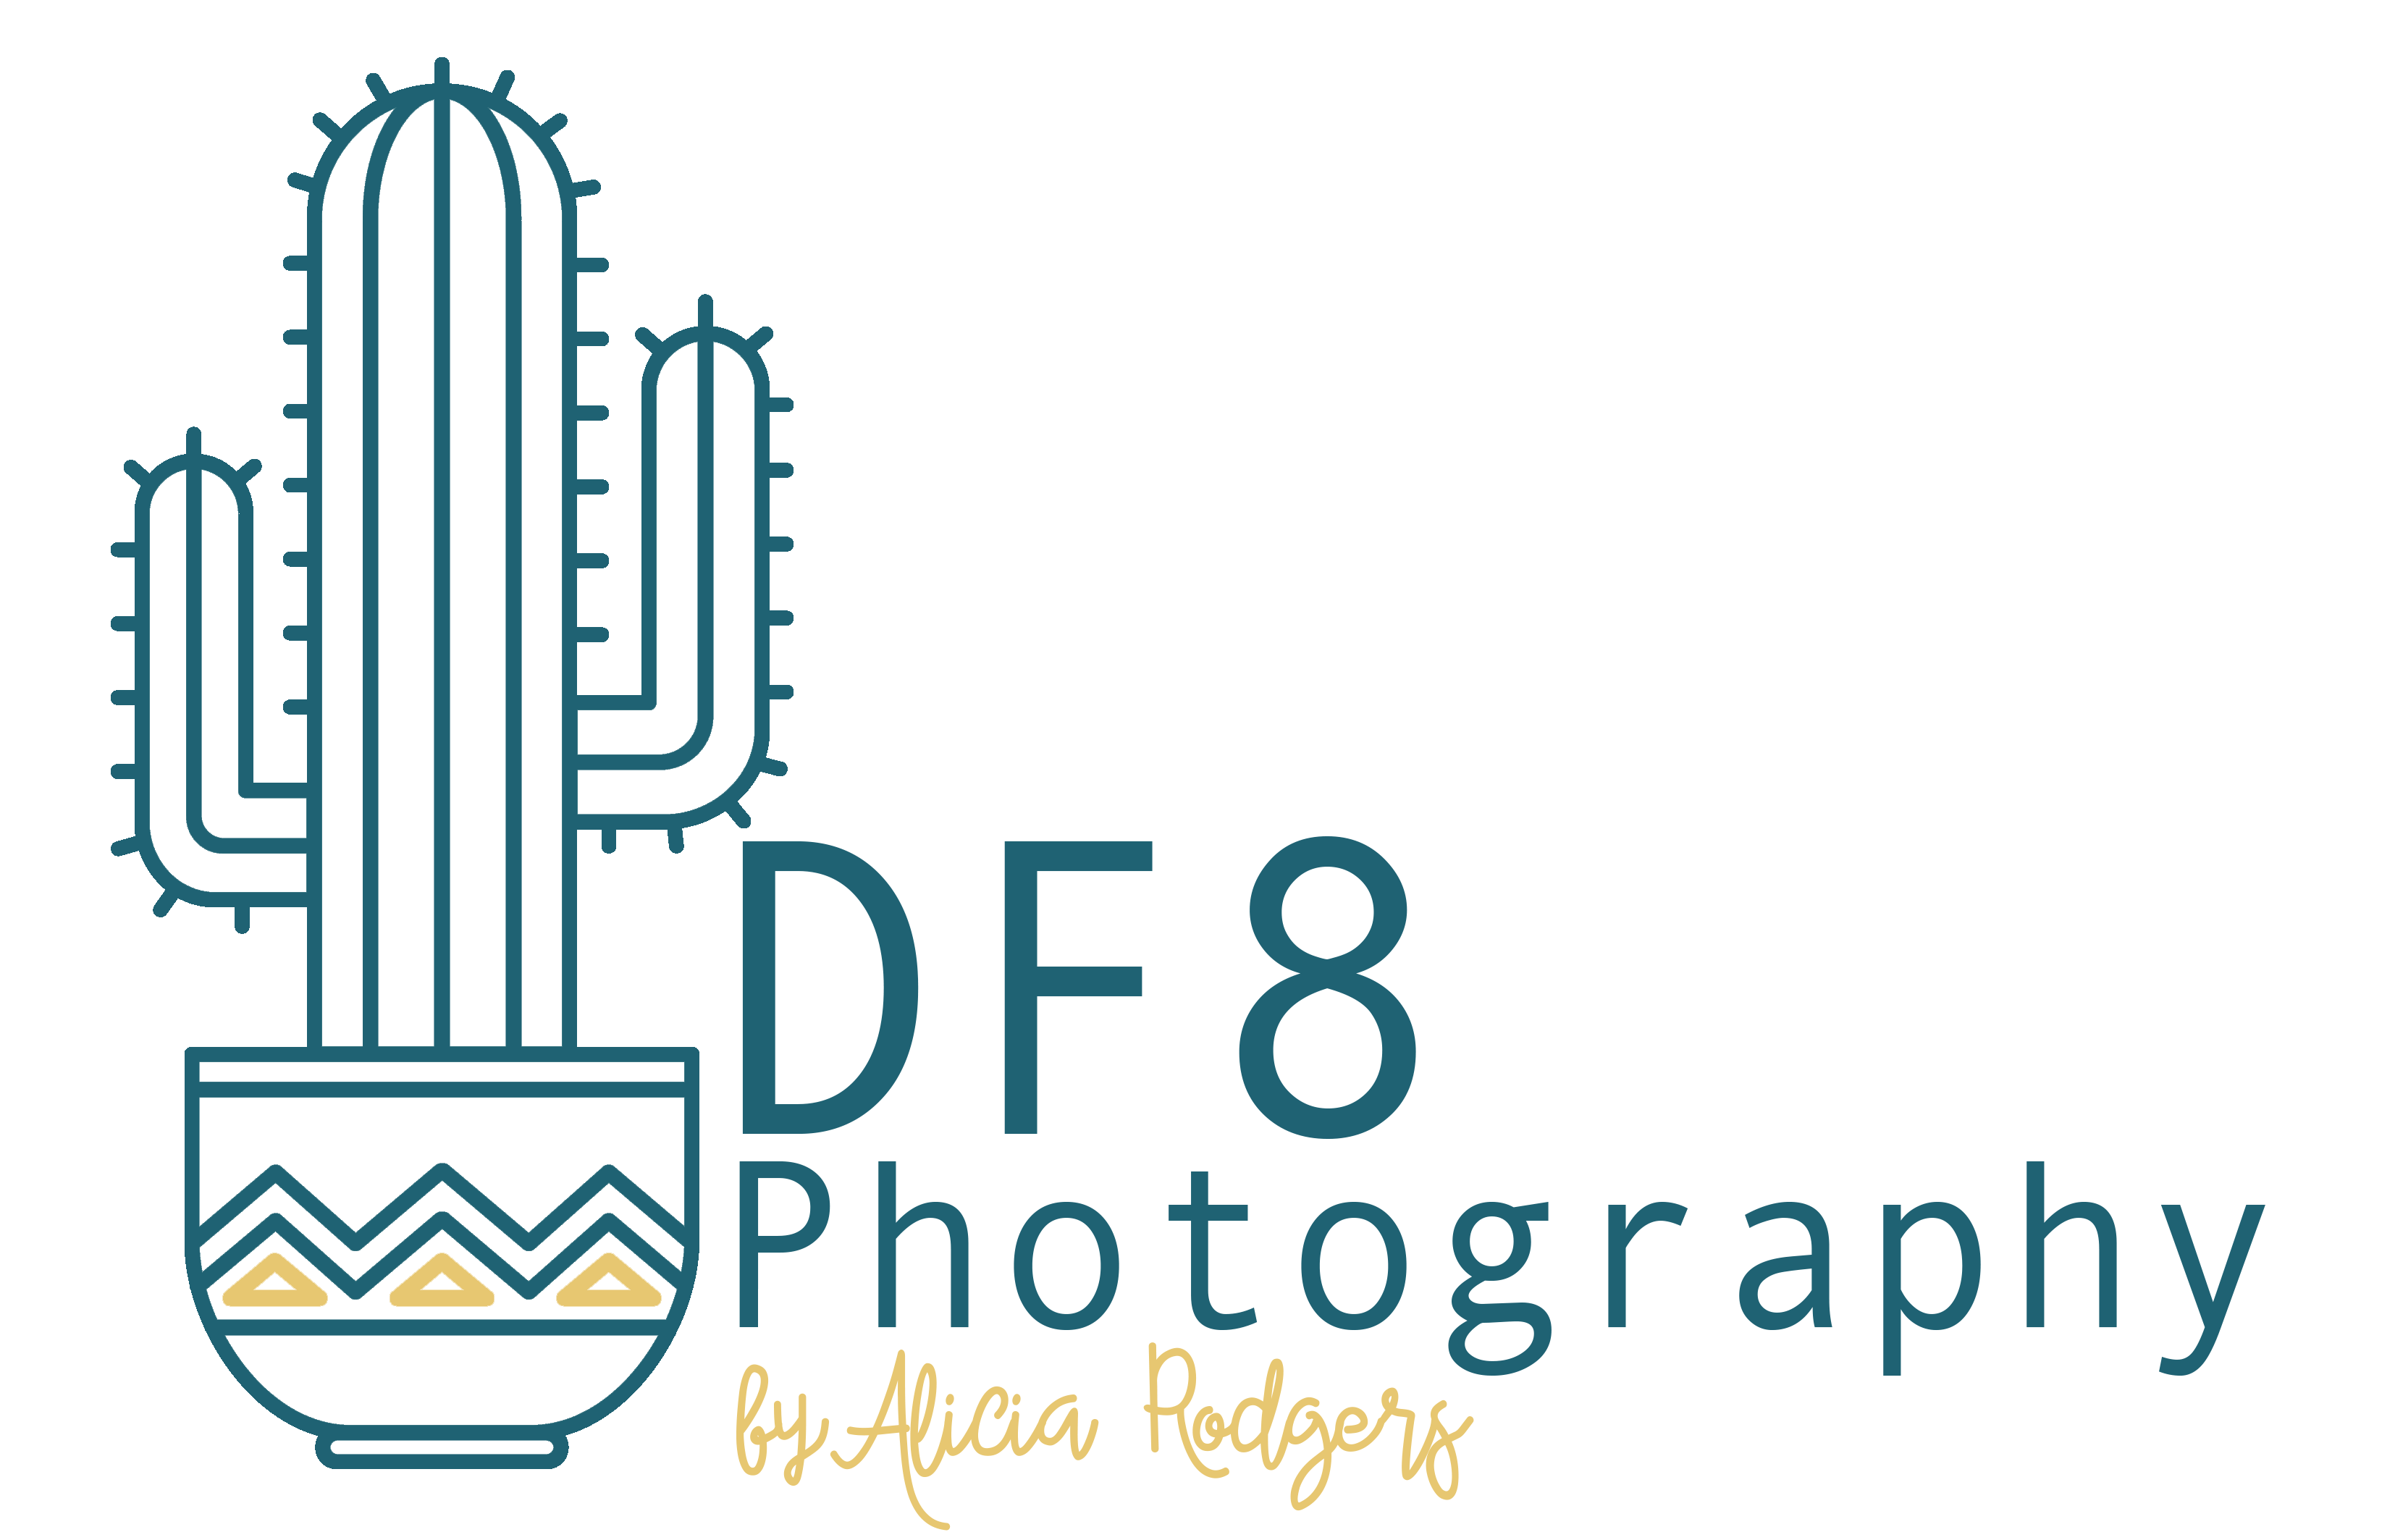 DF8 Photography